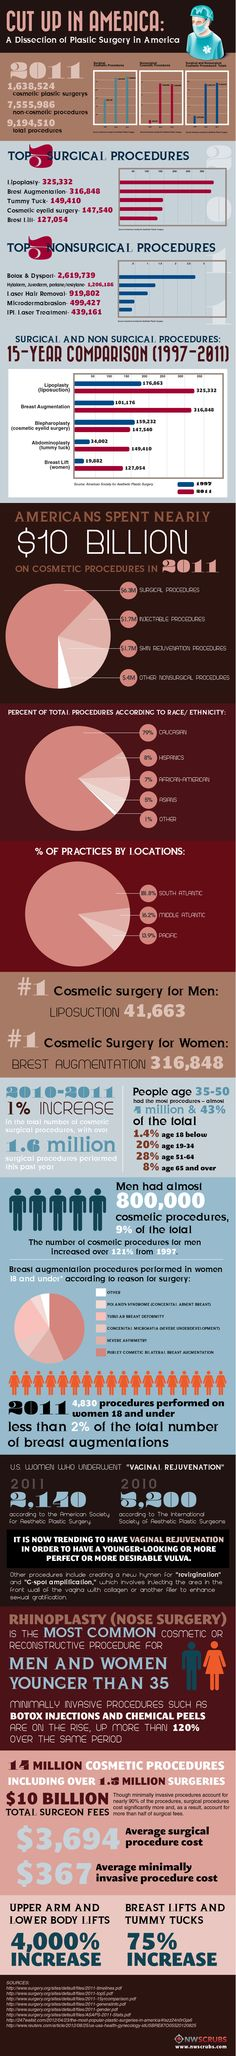 Plastic Surgery it's everywhere and getting more and more common among the masses.